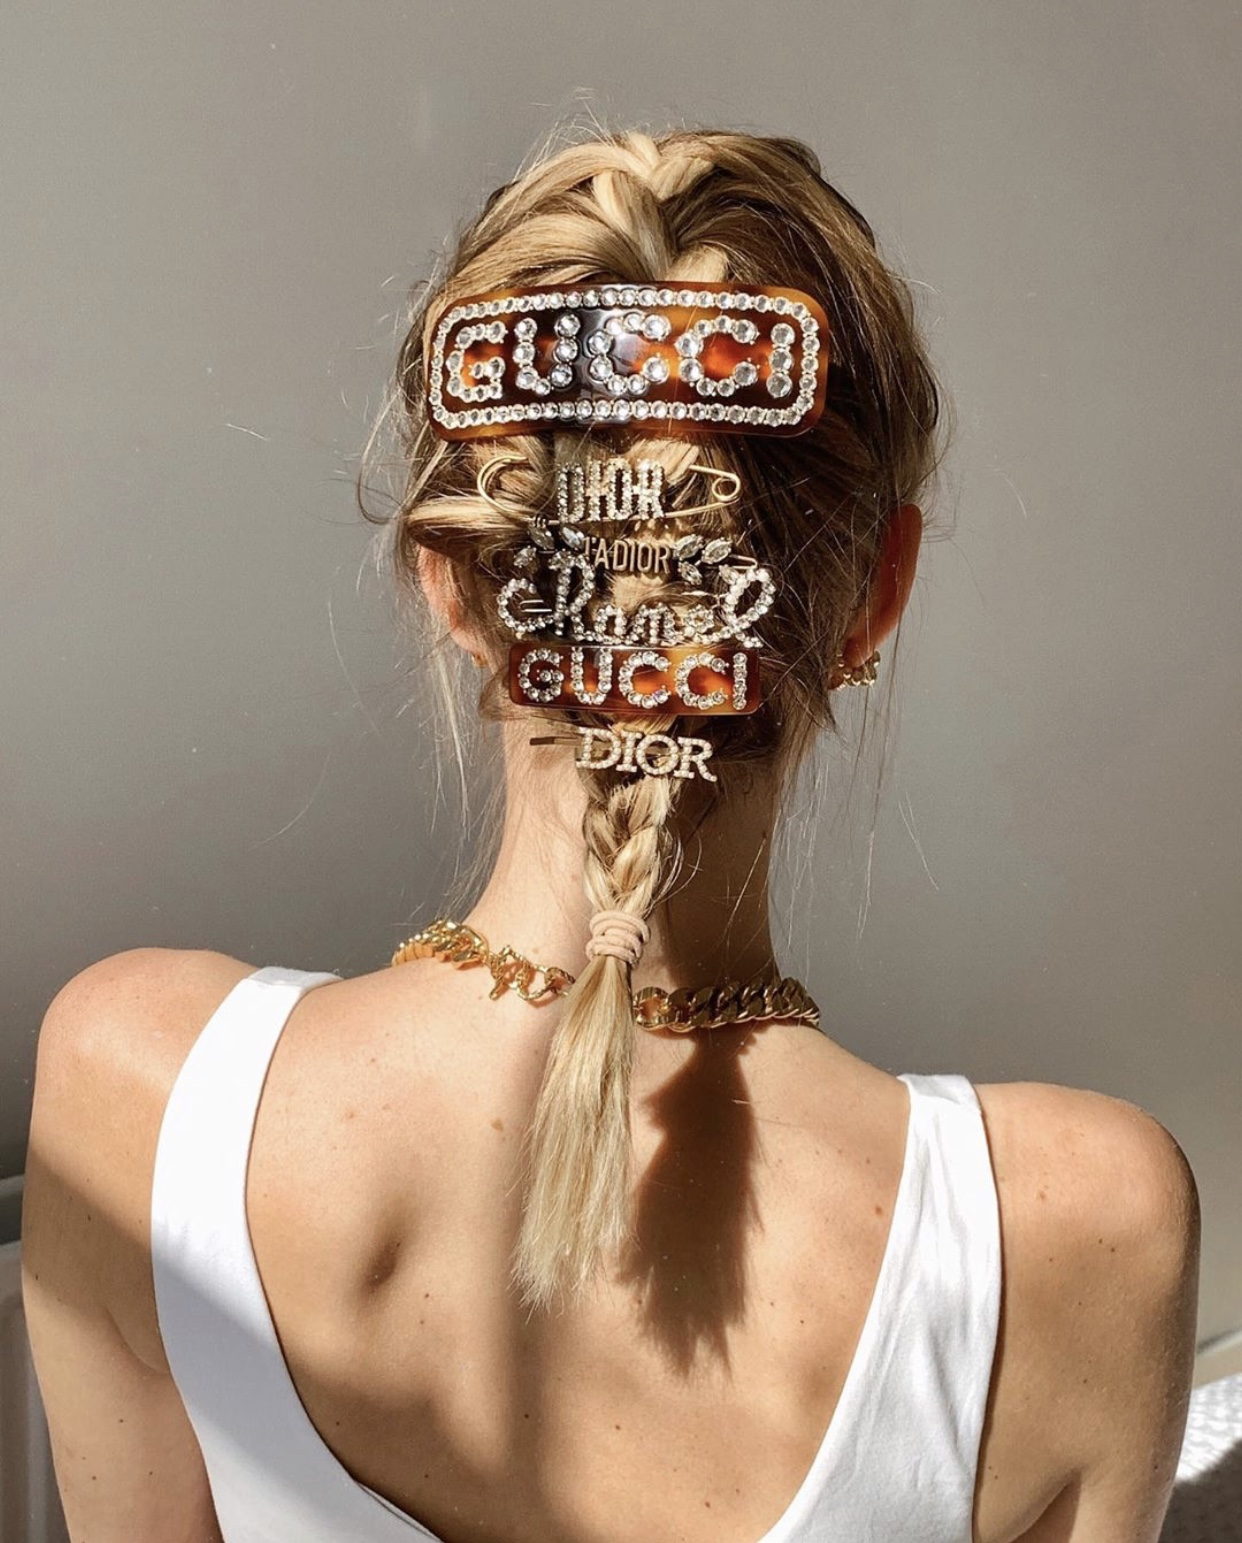 Branded hairpins and braids